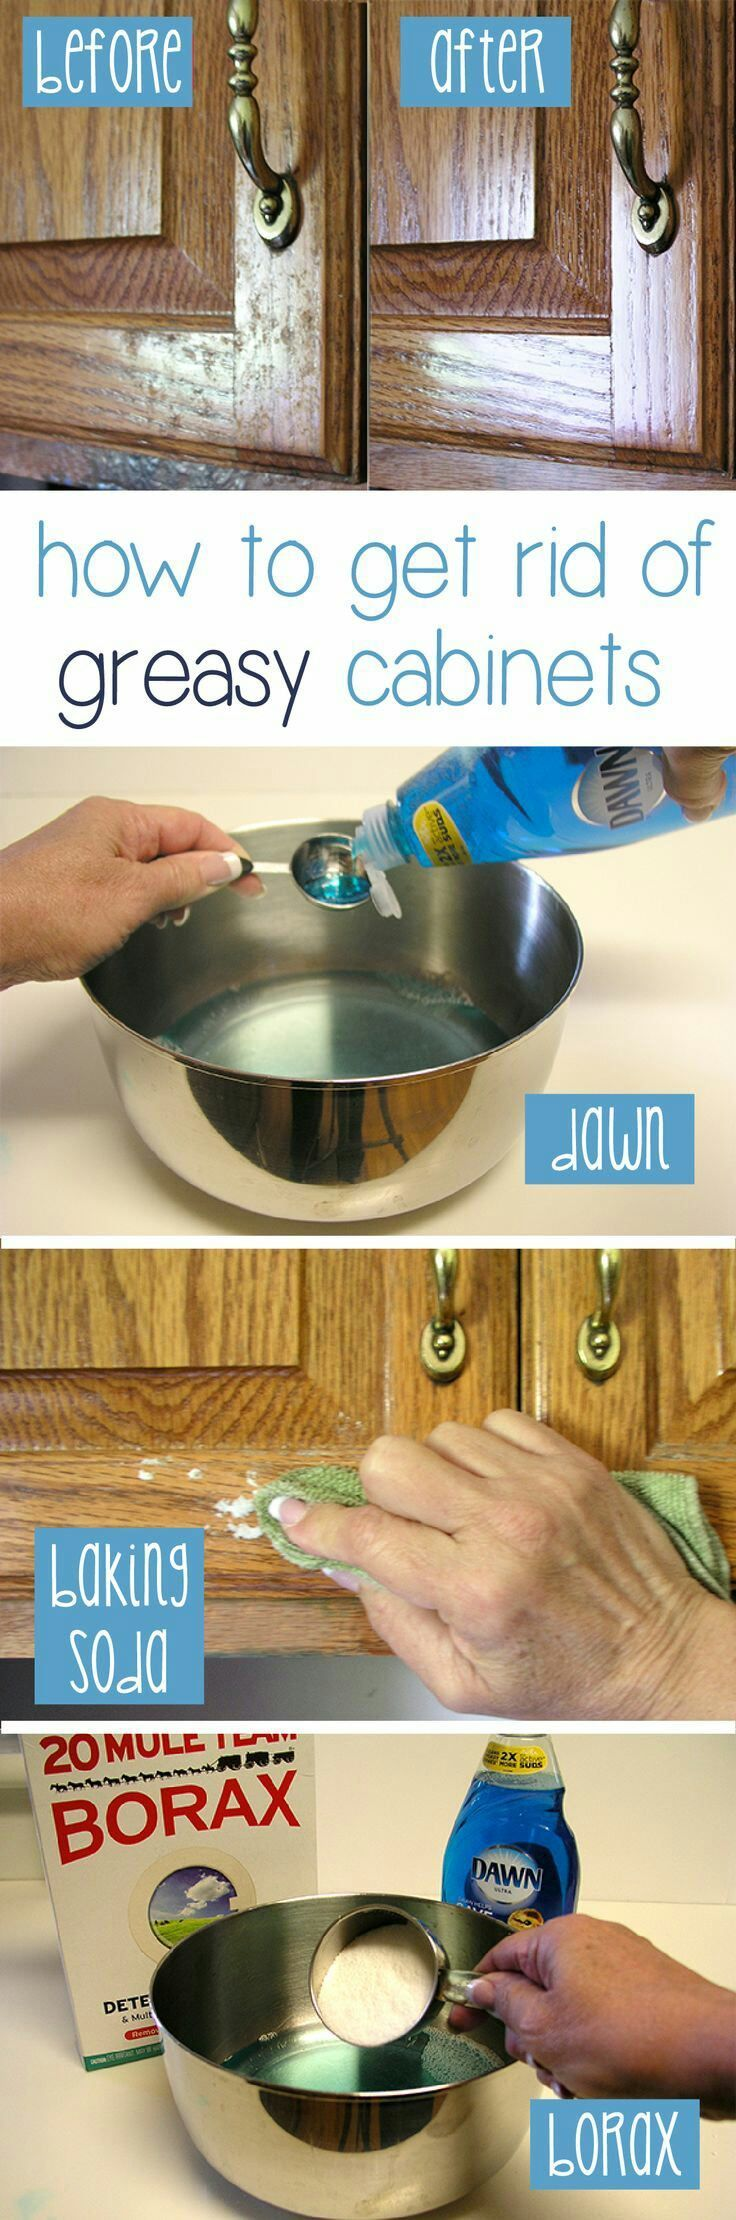 how to clean grease off the top of cabinets